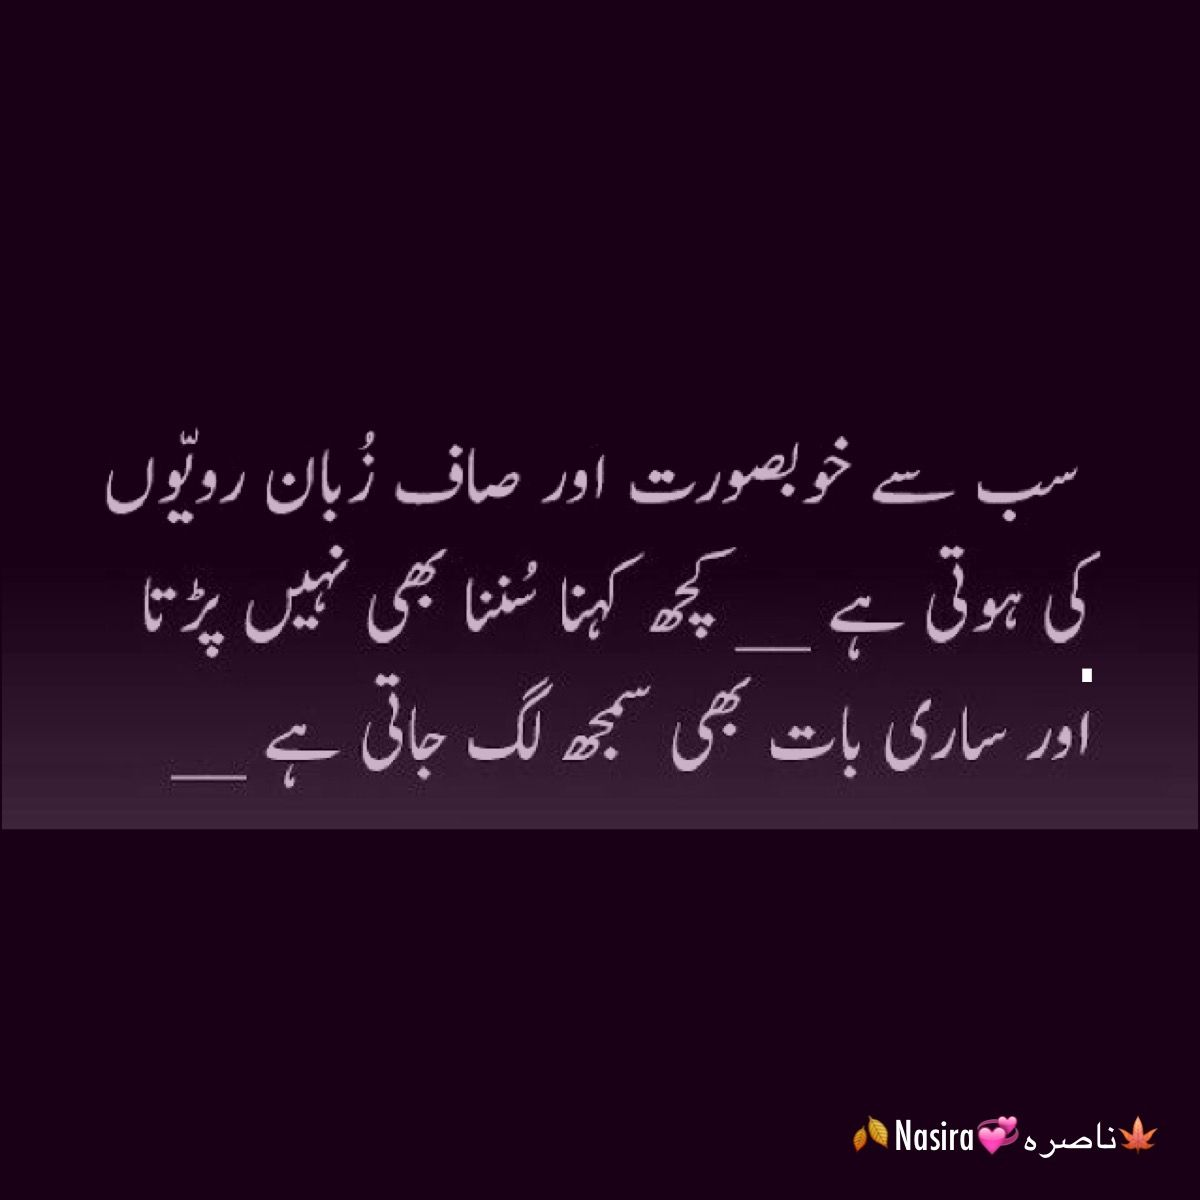 Meaning Of Warriors In Urdu Language: Pin By Nasira Ahmad On Awesome Urdu Quotes & Poetry